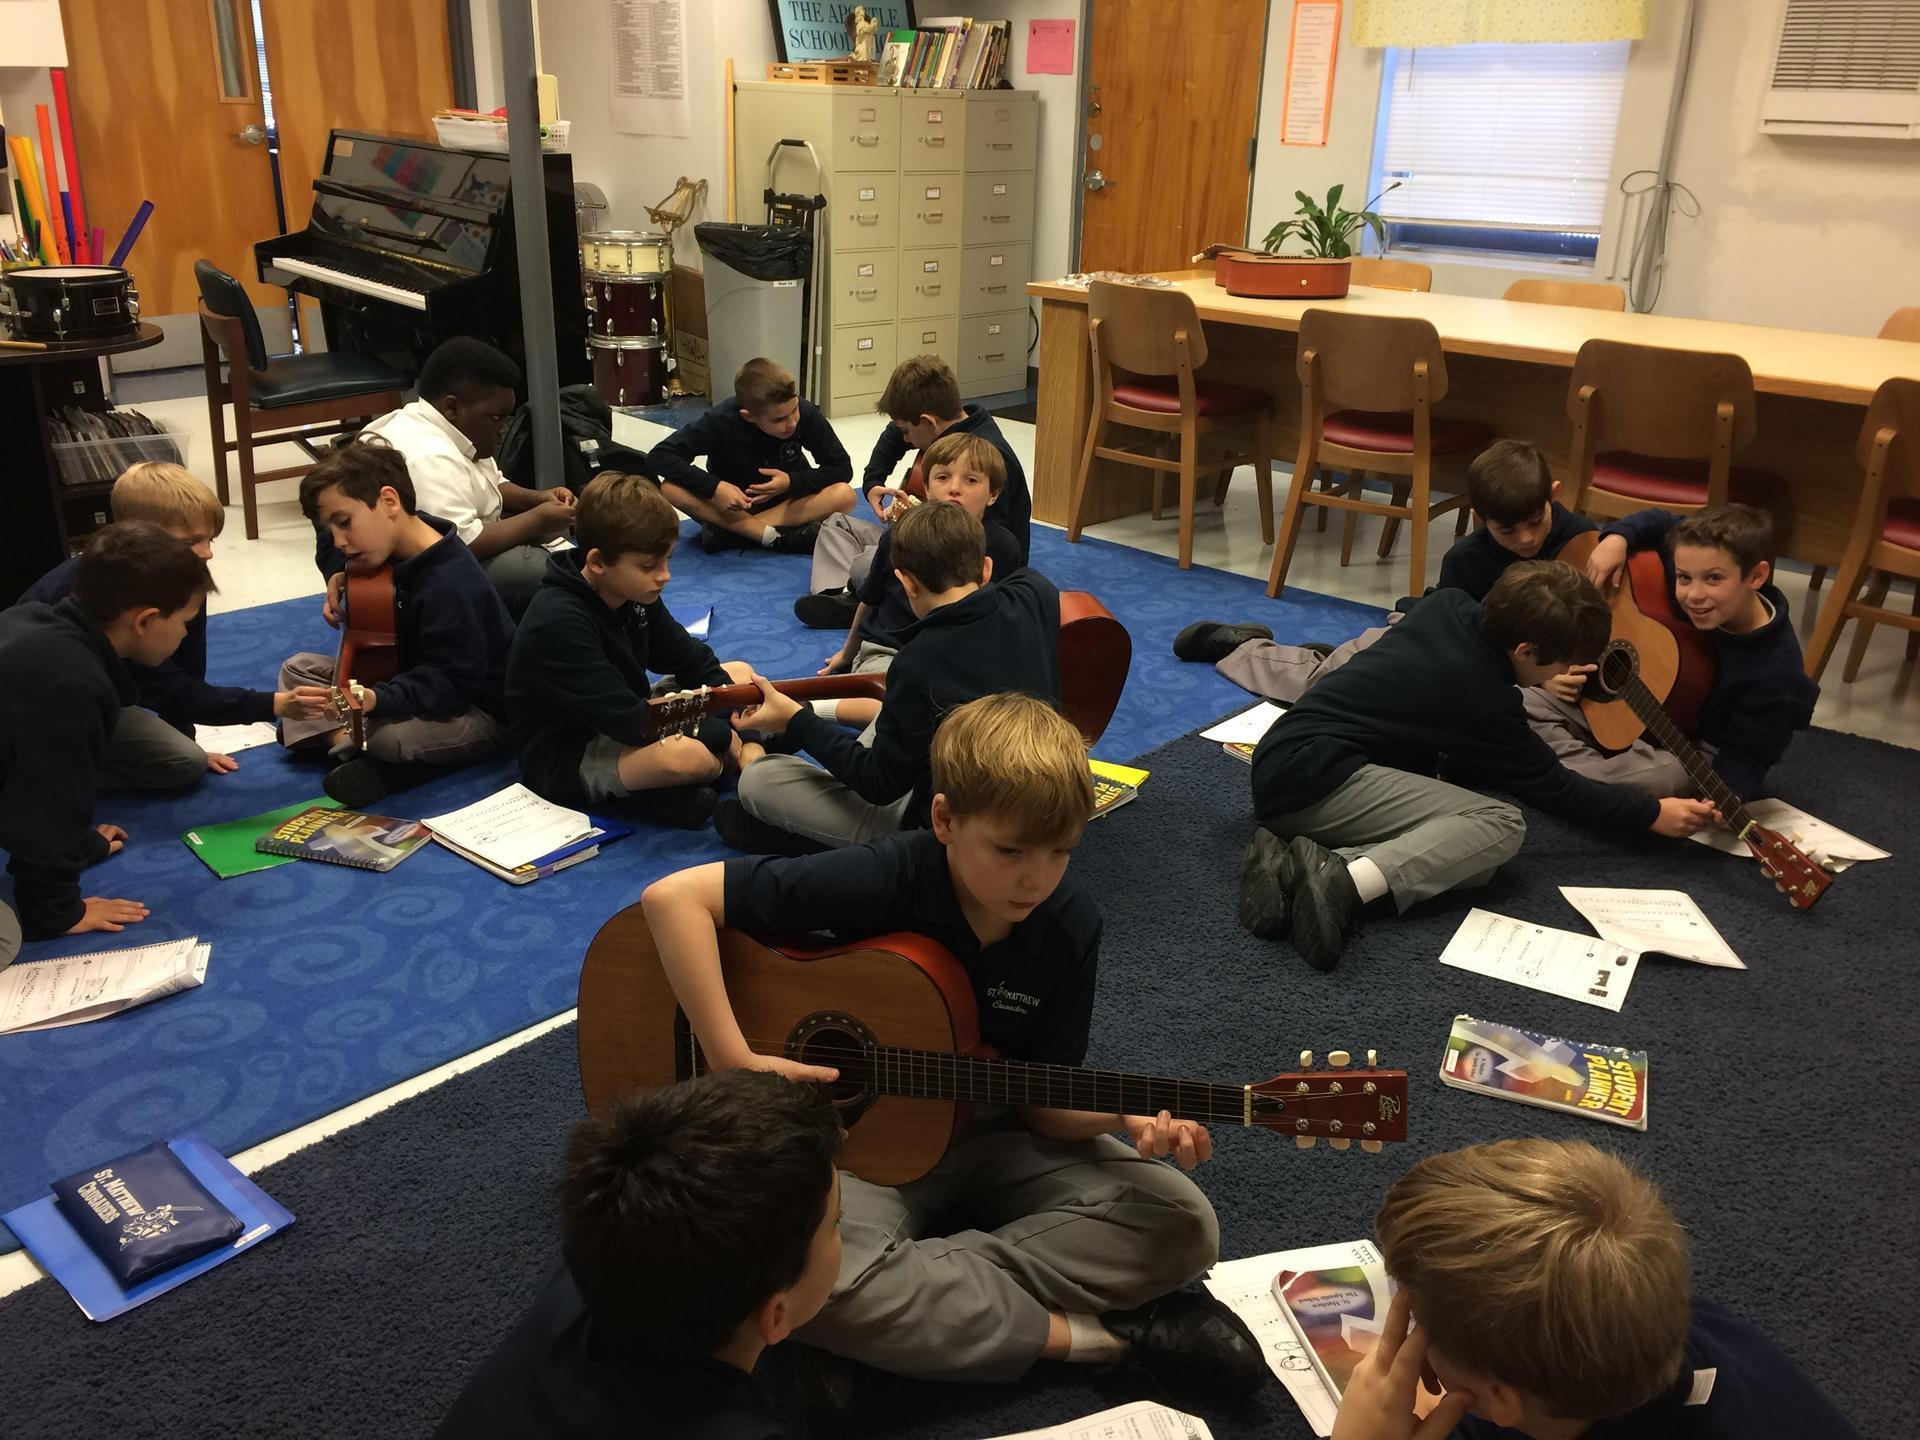 4th Grade Boys Learning Guitar